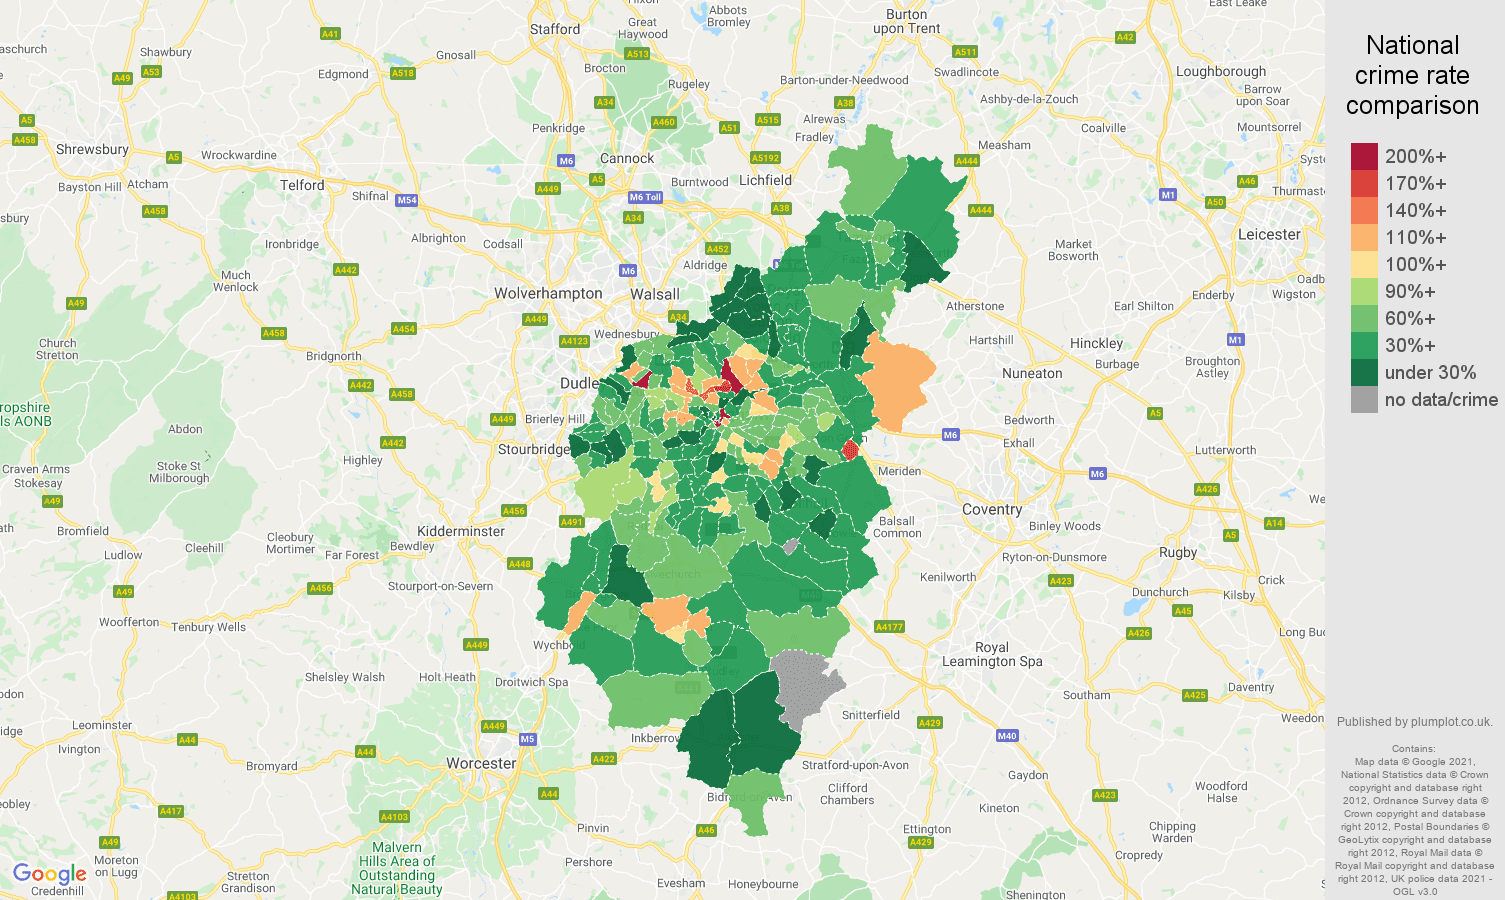 Birmingham drugs crime rate comparison map